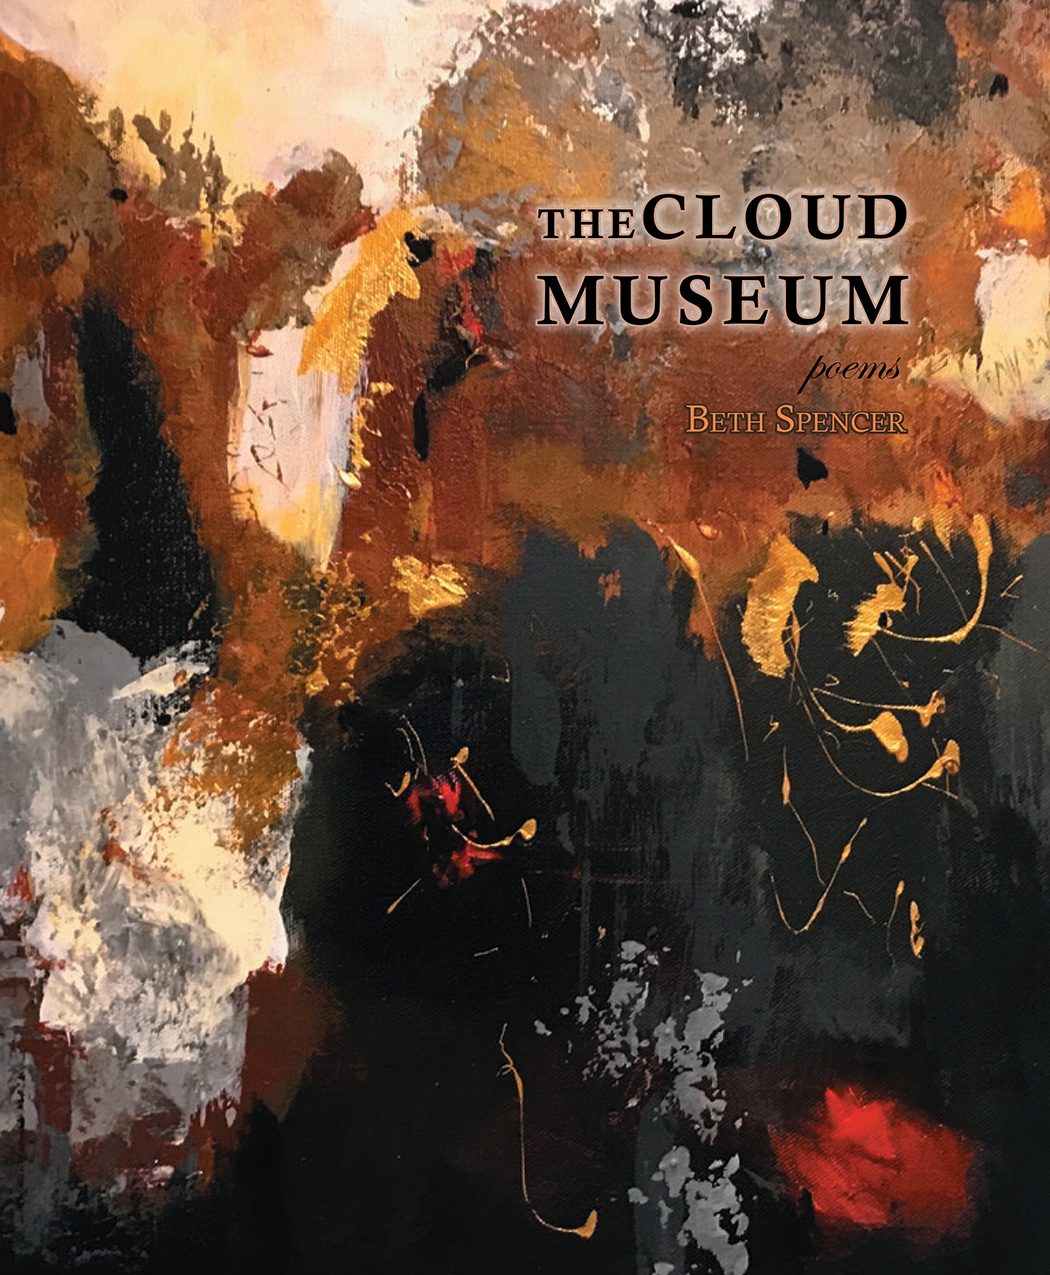 The Cloud Museum